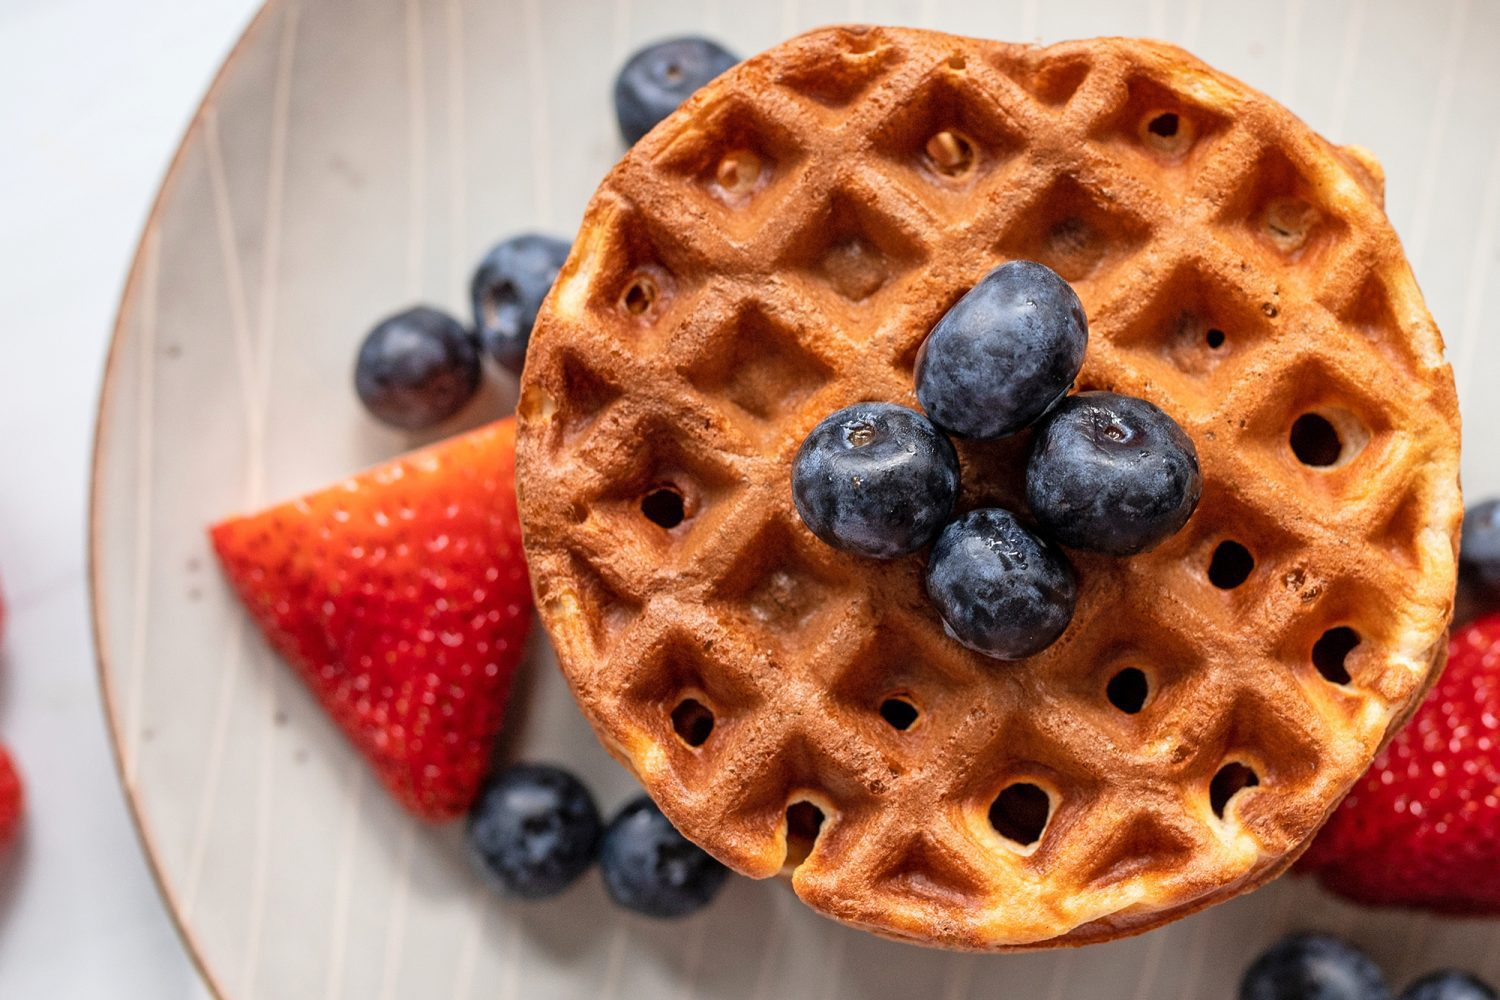 aerial view of a plate of waffles and berries